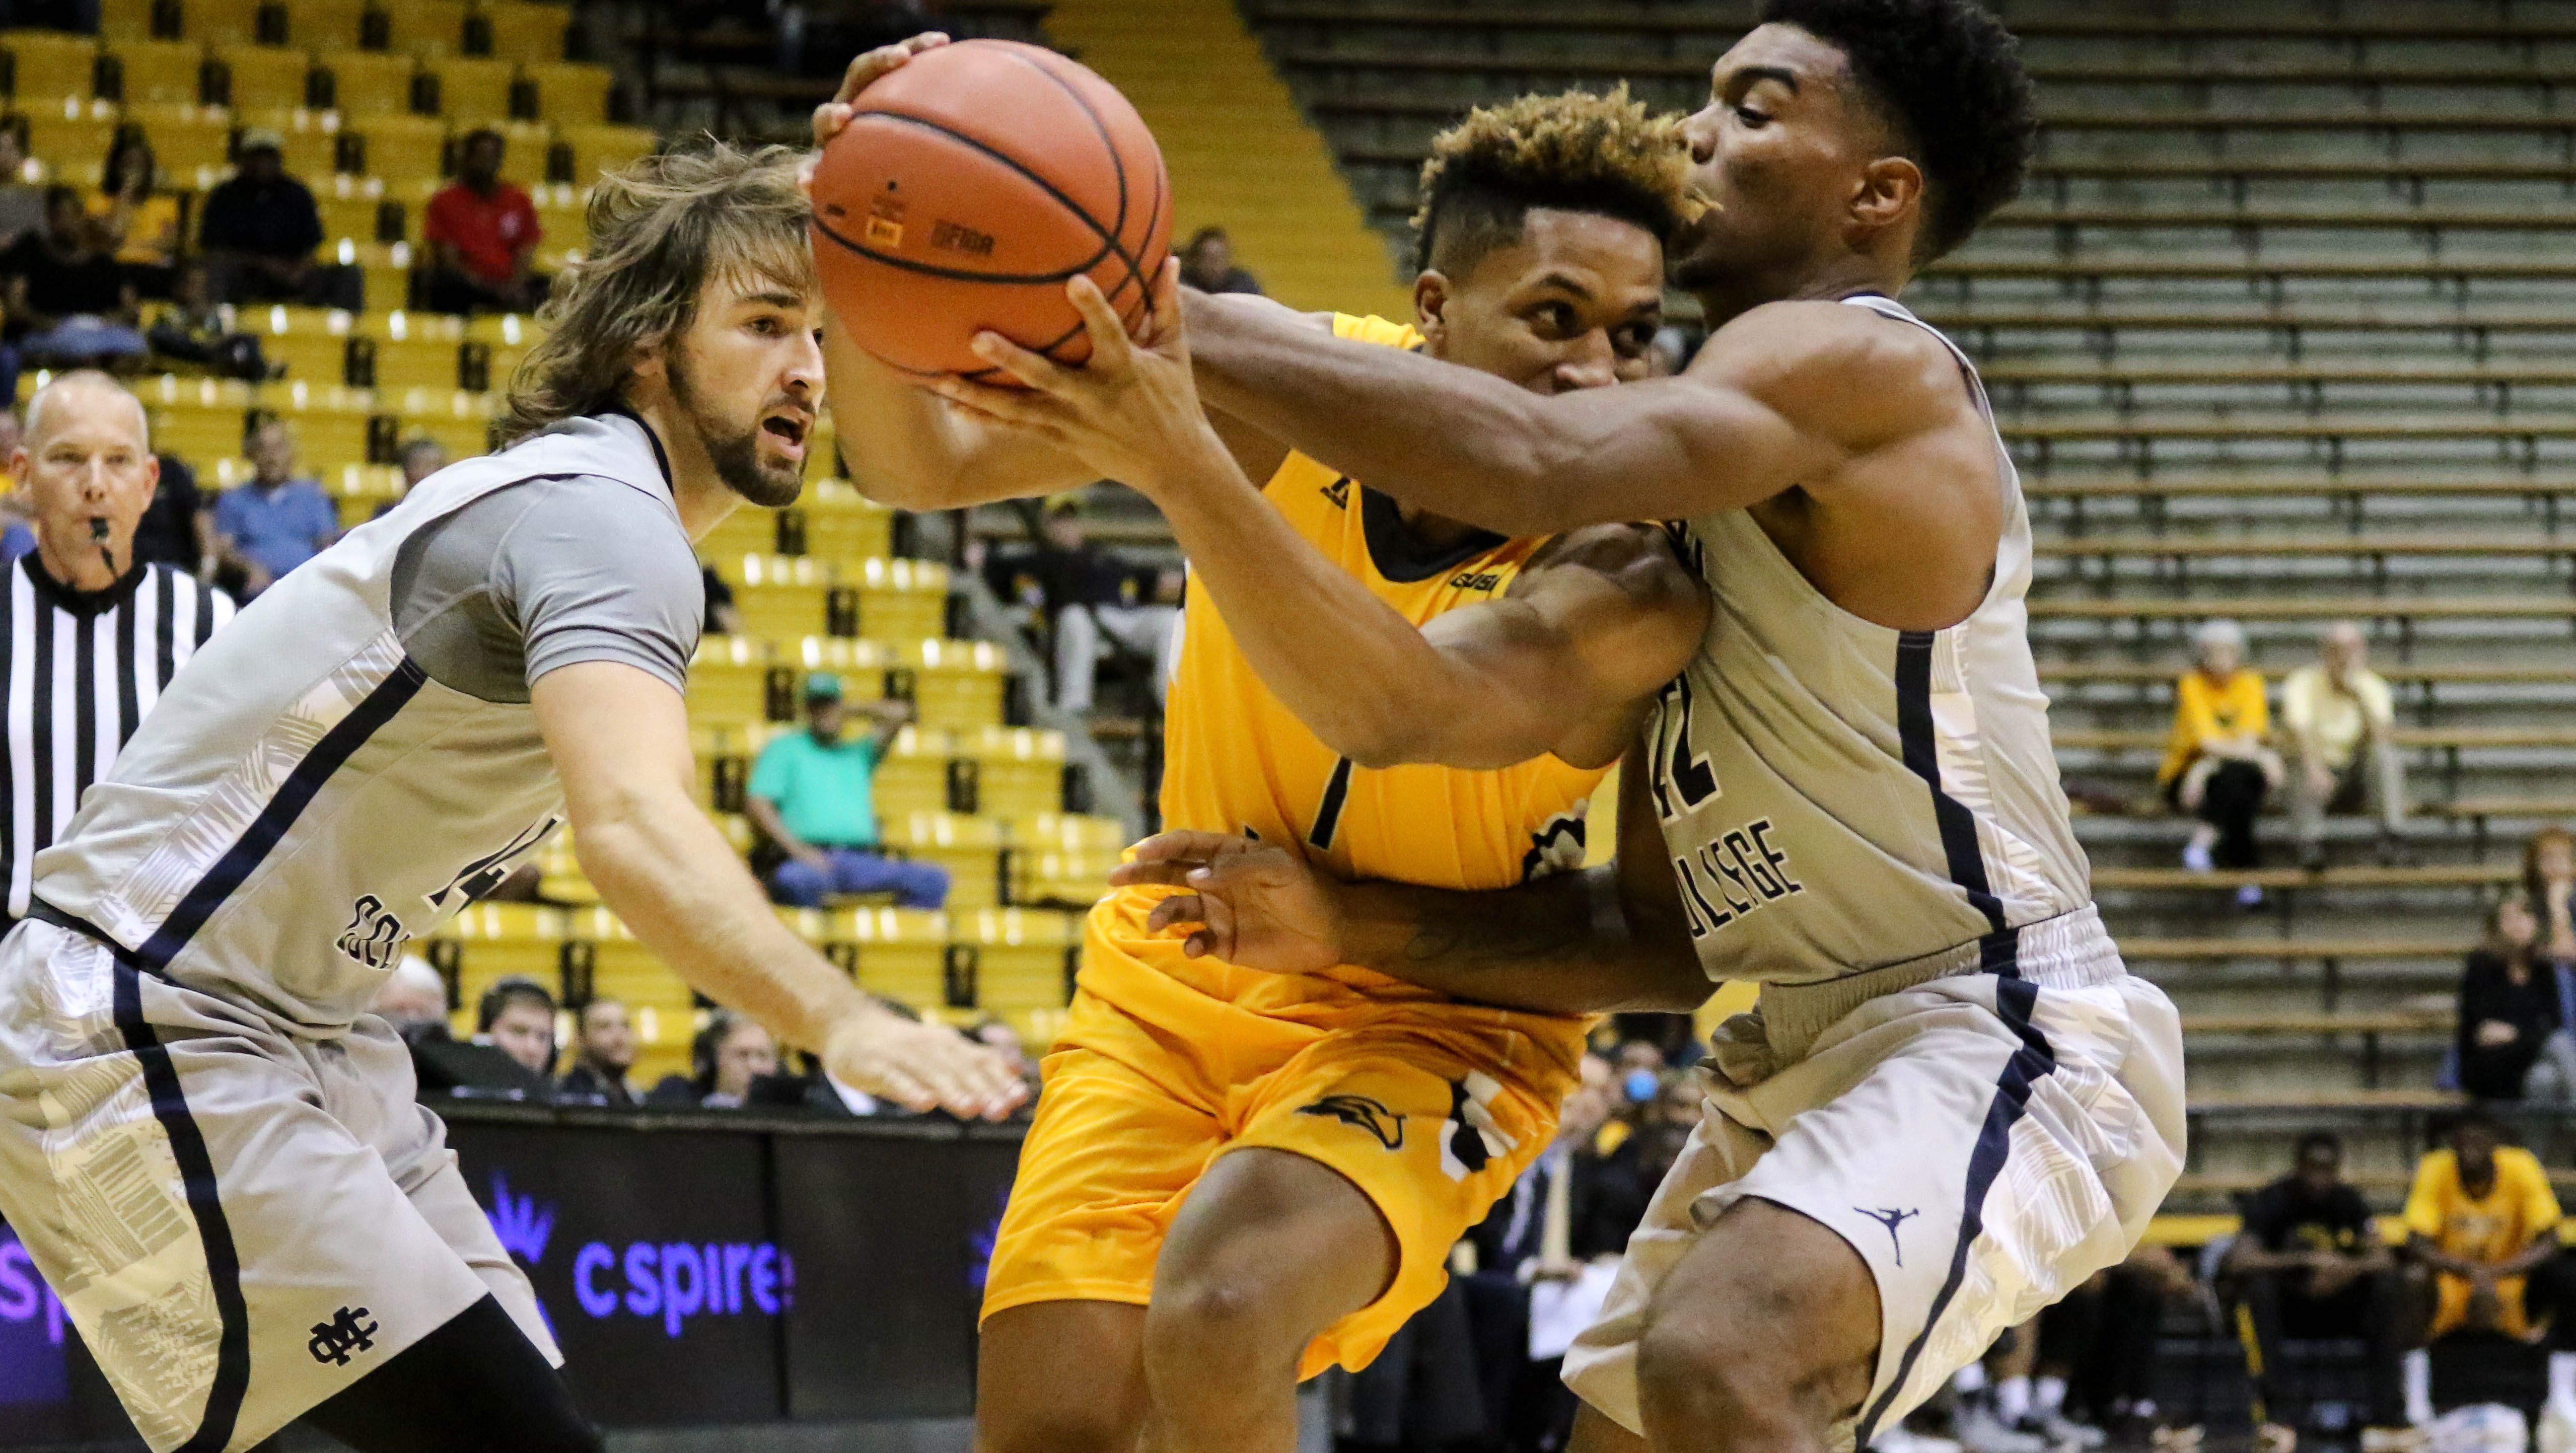 Southern Miss survives double overtime scare, 96-95